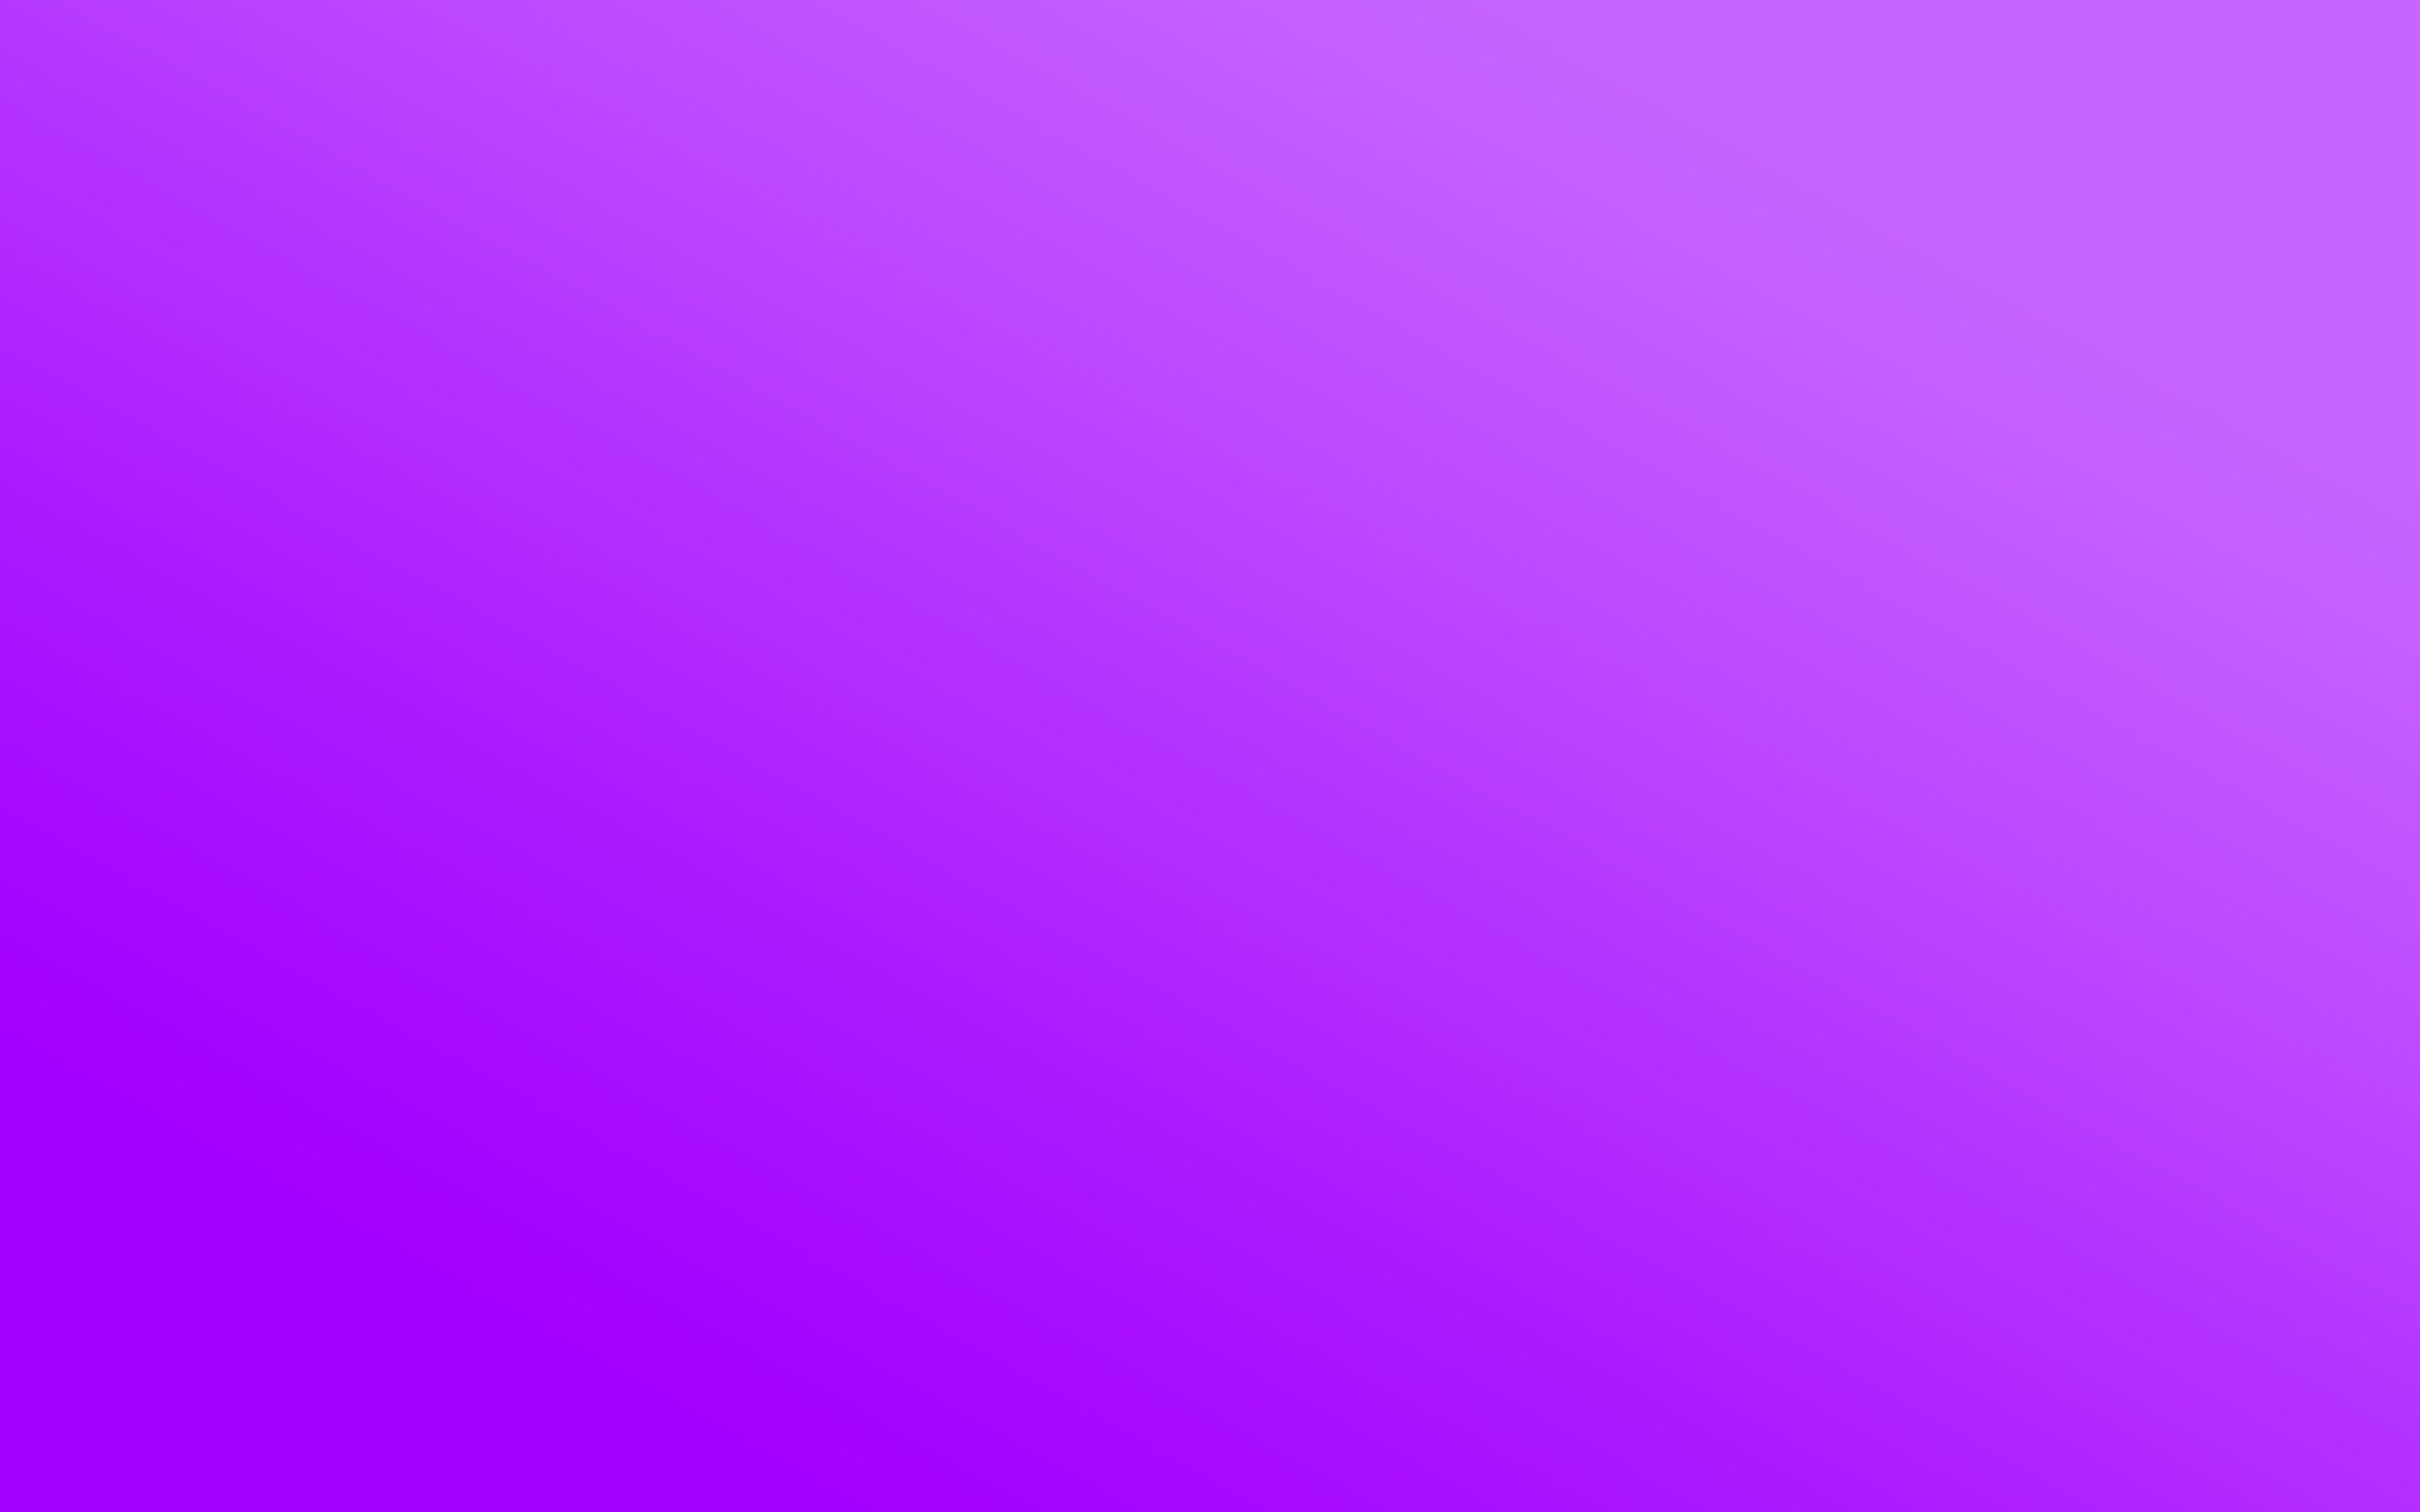 Solid Color Hd Wallpapers Purple Wallpaper Purple Wallpaper